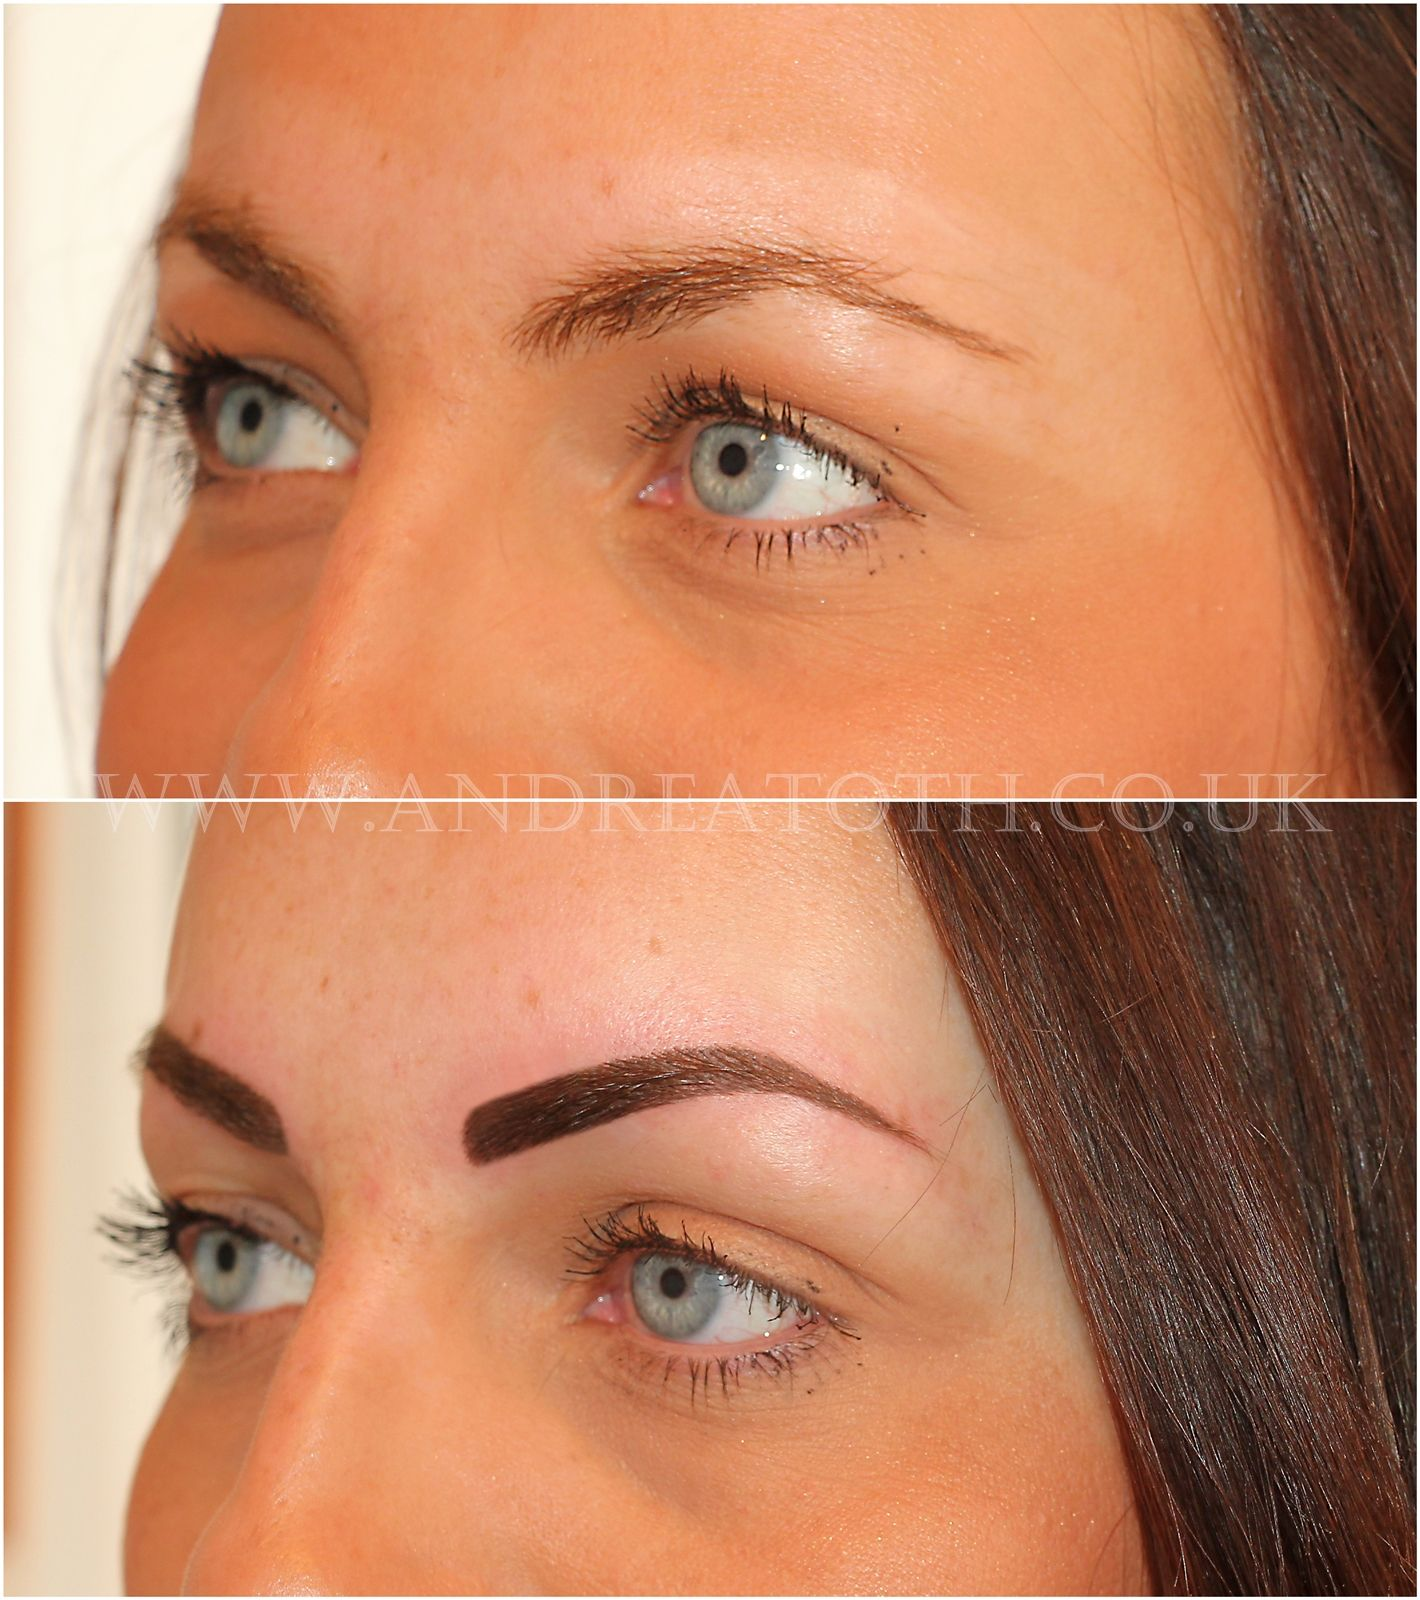 Tracey Simpson Semi Permanent Makeup  Saubhaya Makeup. Best Way To Sell Engagement Ring. Jobs With Social Work Degree What Is Mas90. Wall Paper Towel Dispenser Pest Control Mole. Iphone Credit Card Device Palm Beach Roofing. Transvaginal Mesh Implant Phlebotomy Cpt Code. Online Masters Degree In Philosophy. Erectile Dysfunction And Age Mirror Co Uk. Car Insurence Companys Citizens Bank Checking